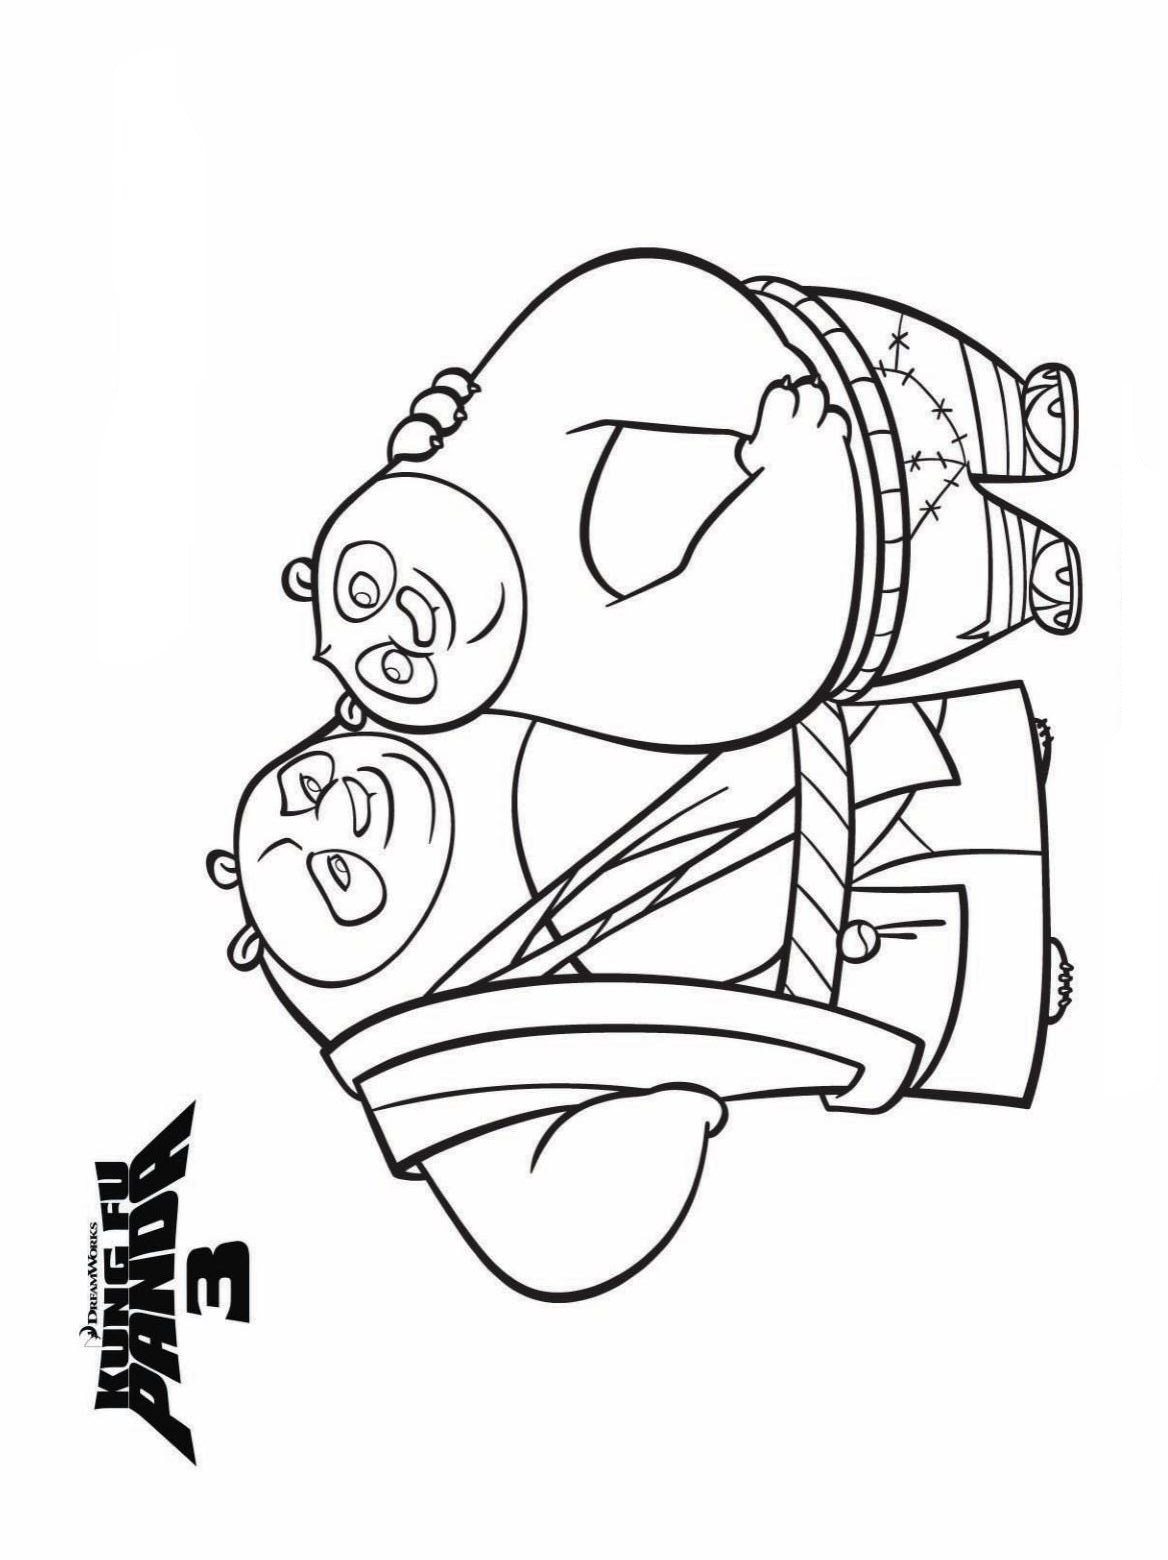 number 3 coloring pages. Kung Fu Panda 3 Kids n fun com  7 coloring pages of